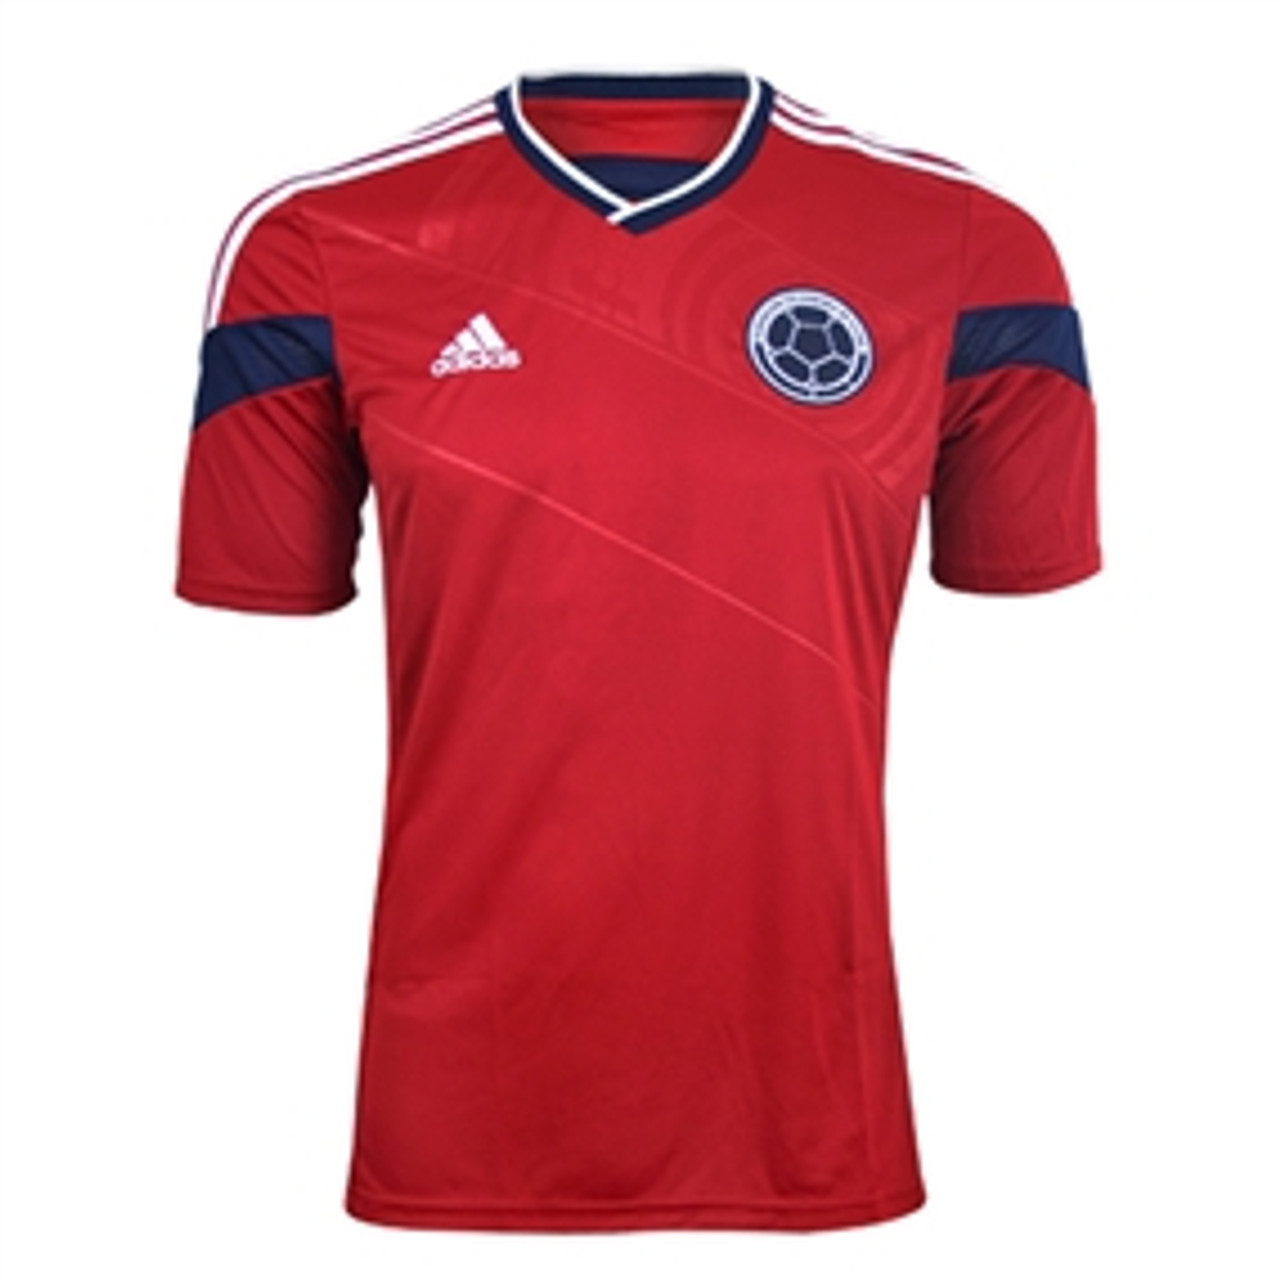 ADIDAS COLOMBIA 2014 AWAY RED JERSEY